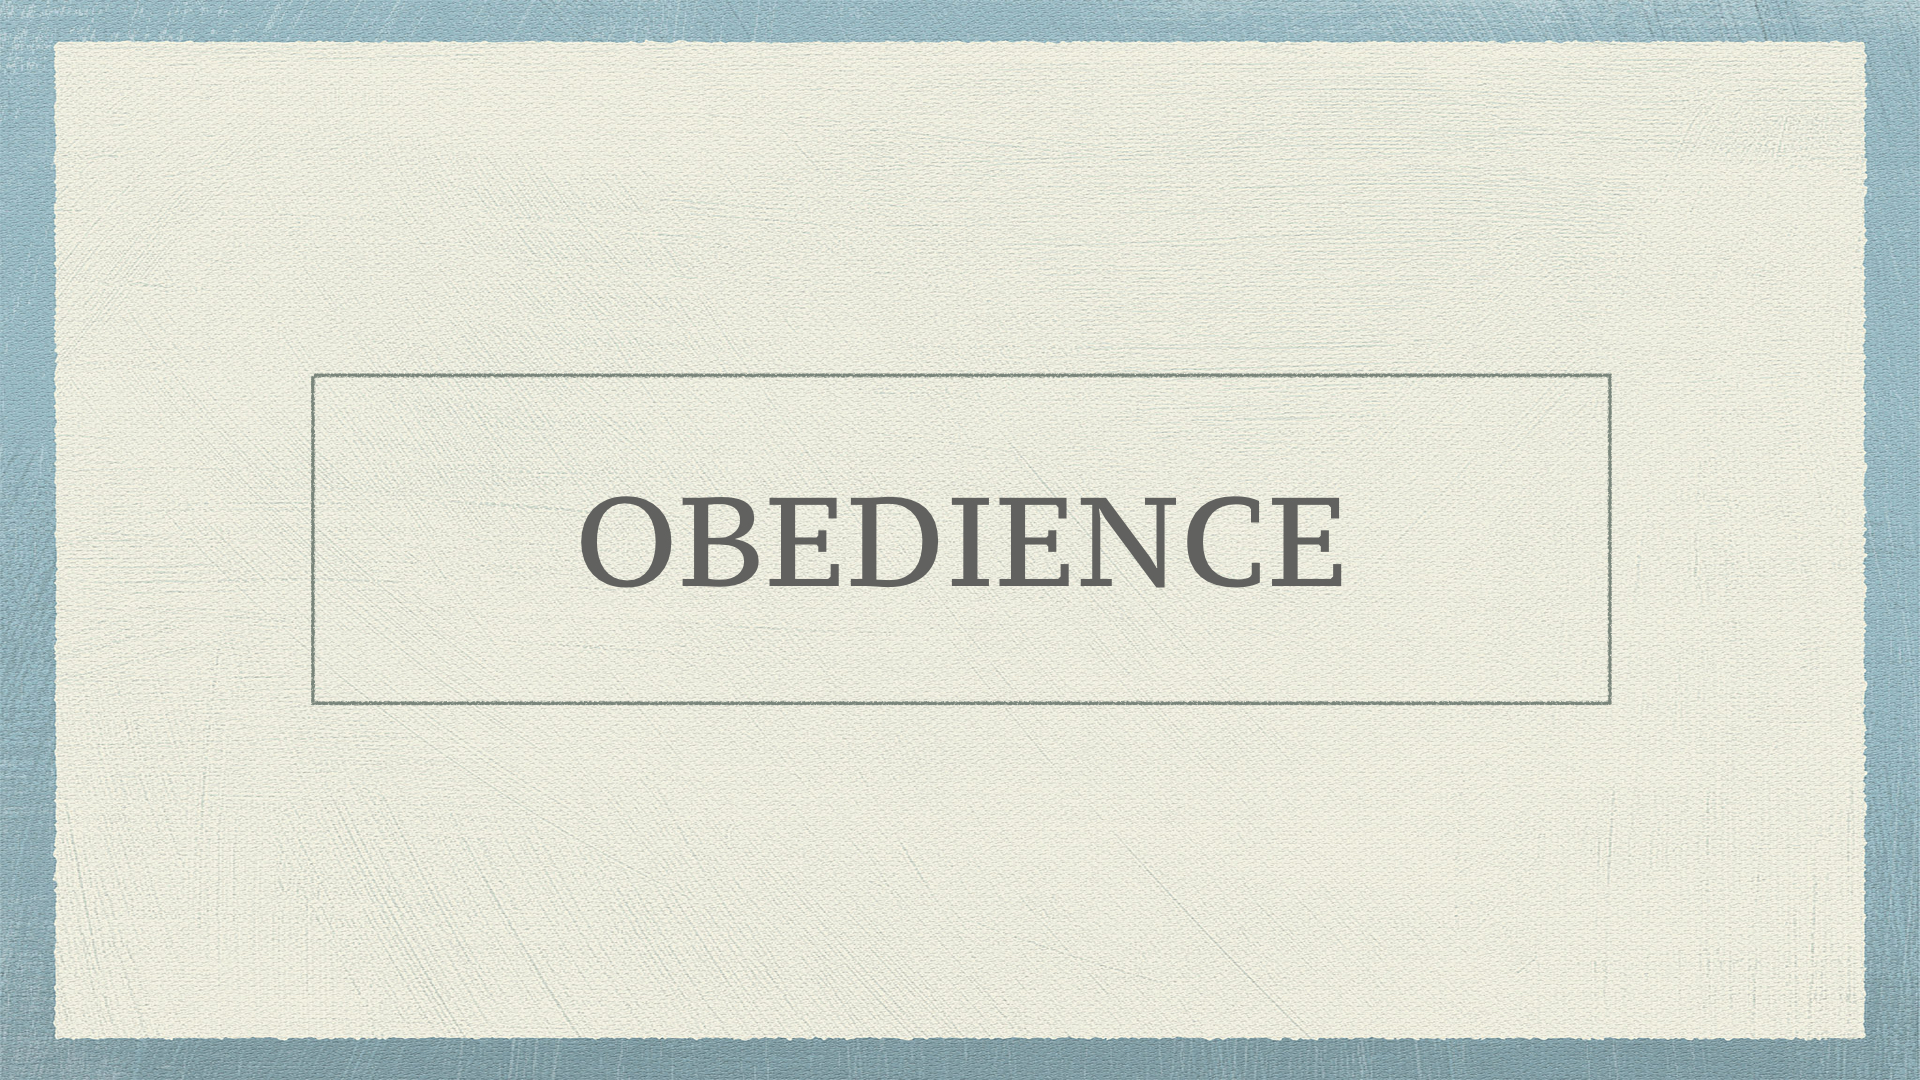 obedience to parents and teachers essays We are taught at an early age to obey parents, teachers,  but decades of research on conformity and obedience make it clear that we live in a social world and.